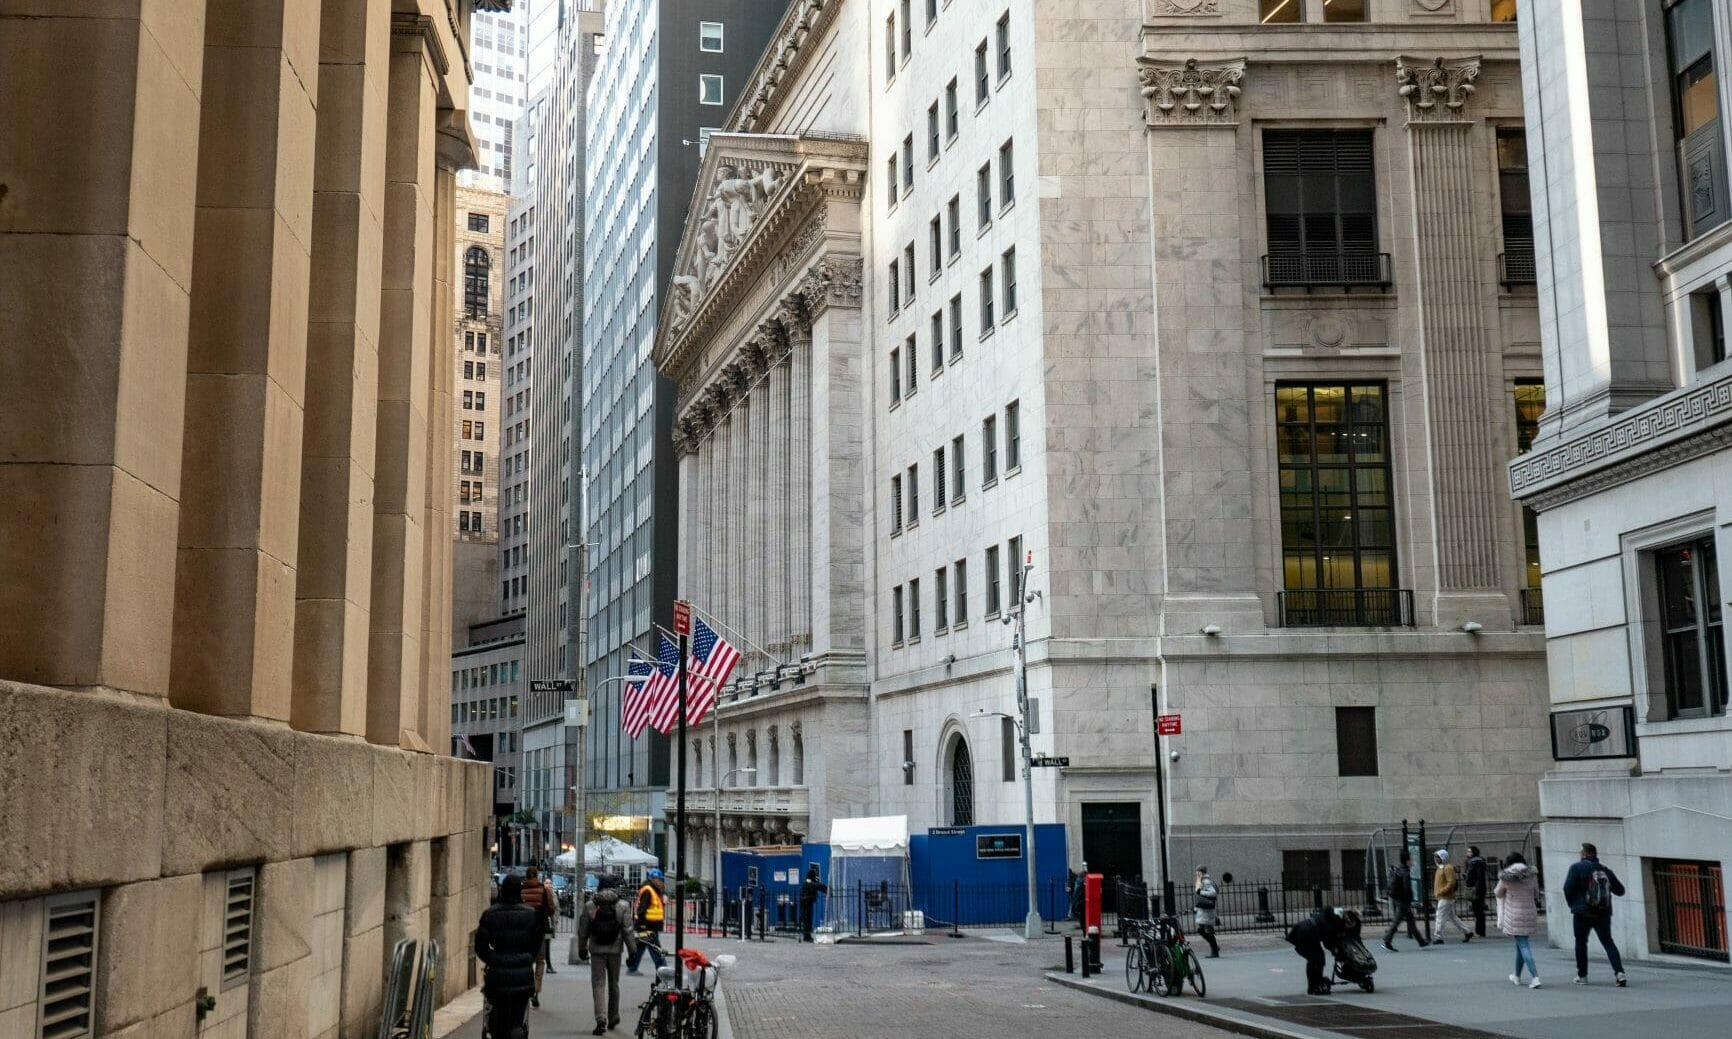 Financial institutions likely to doubledown on security spending